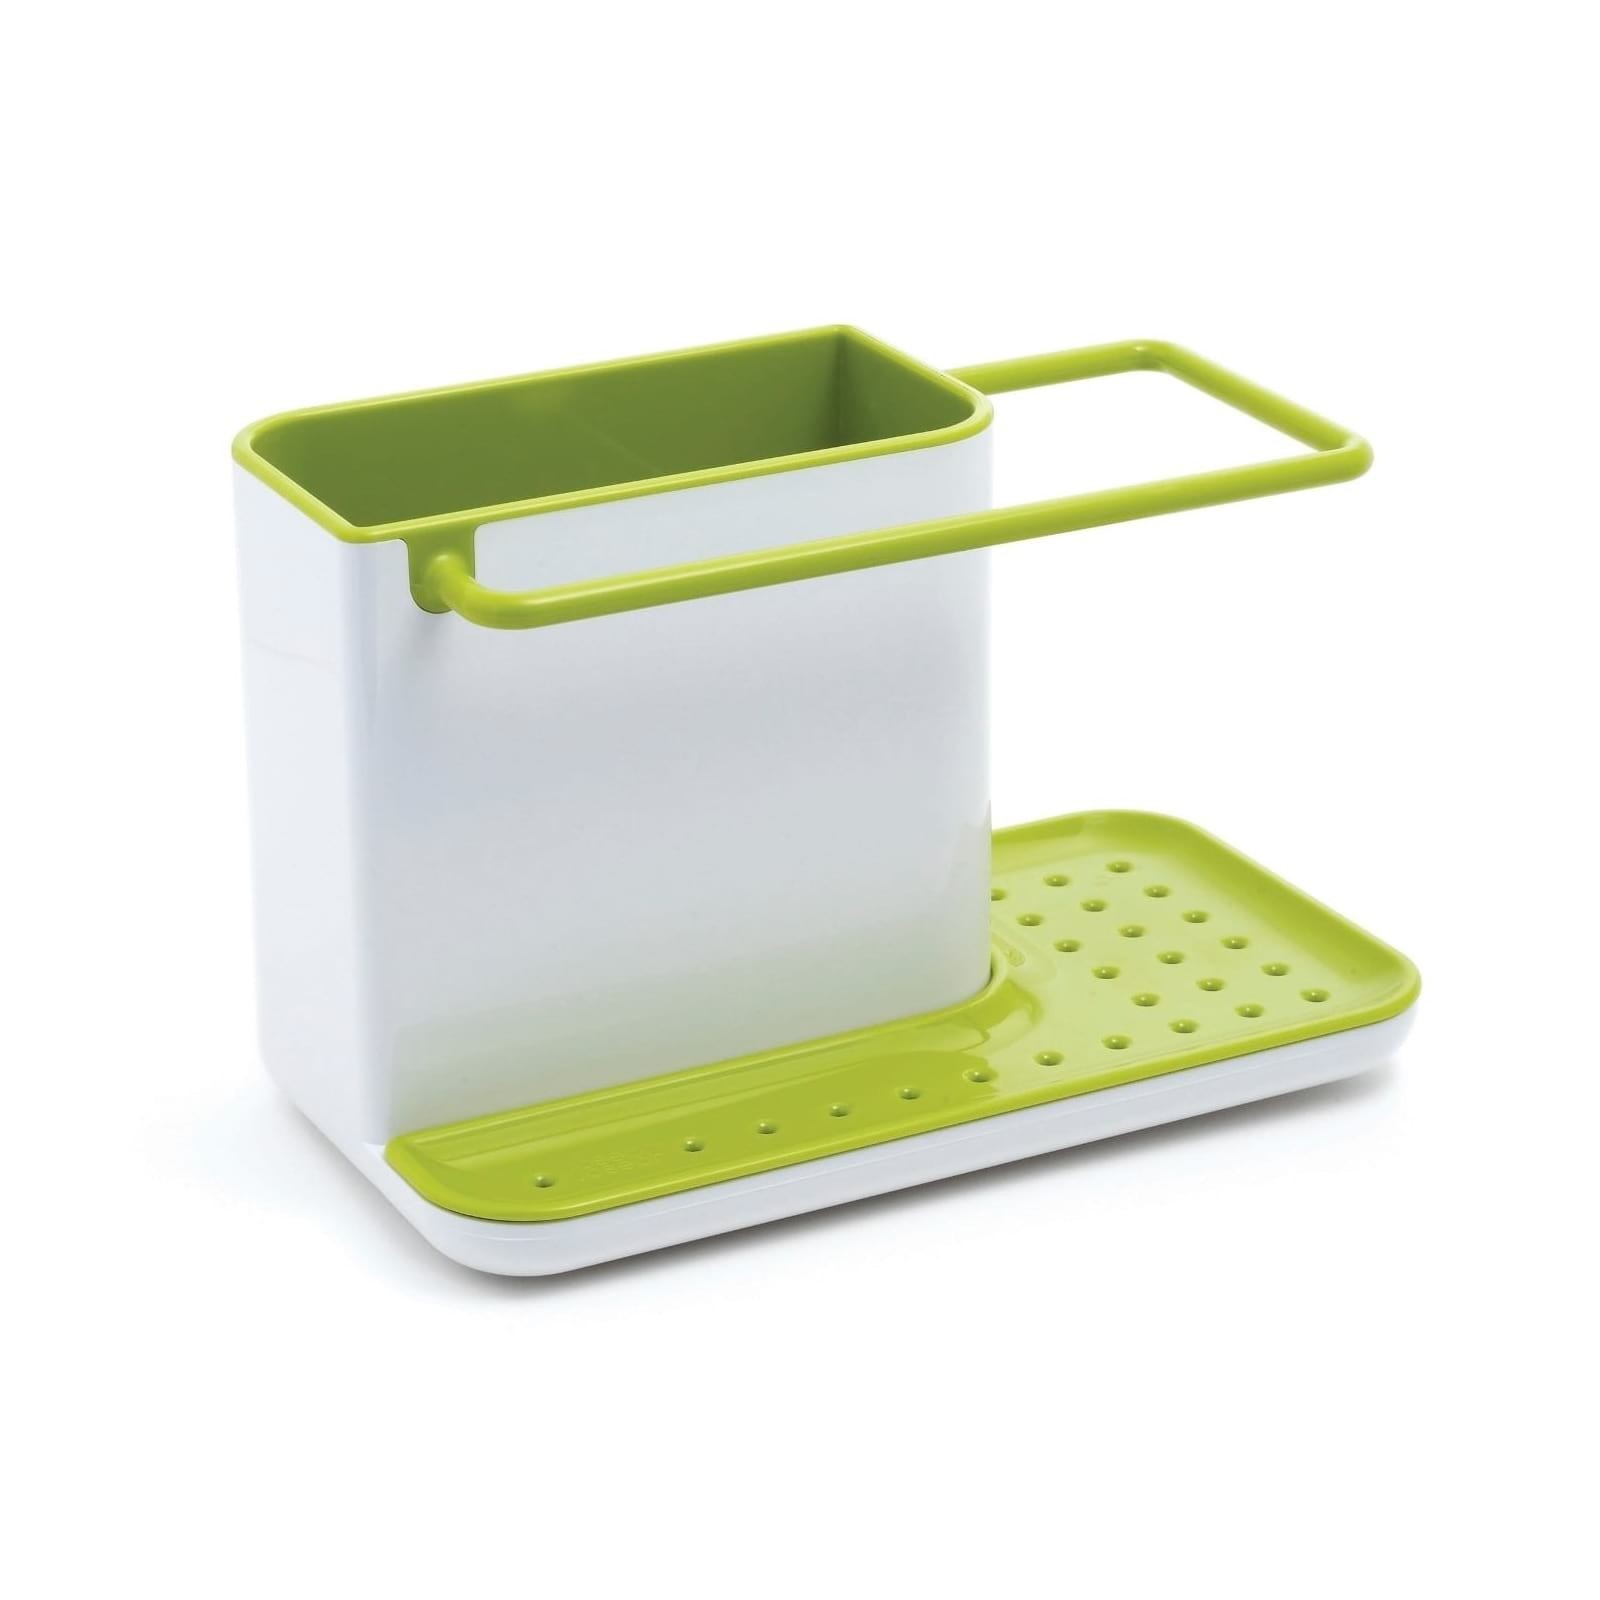 Caddy™ Sink Organiser (White / Green) - Joseph Joseph